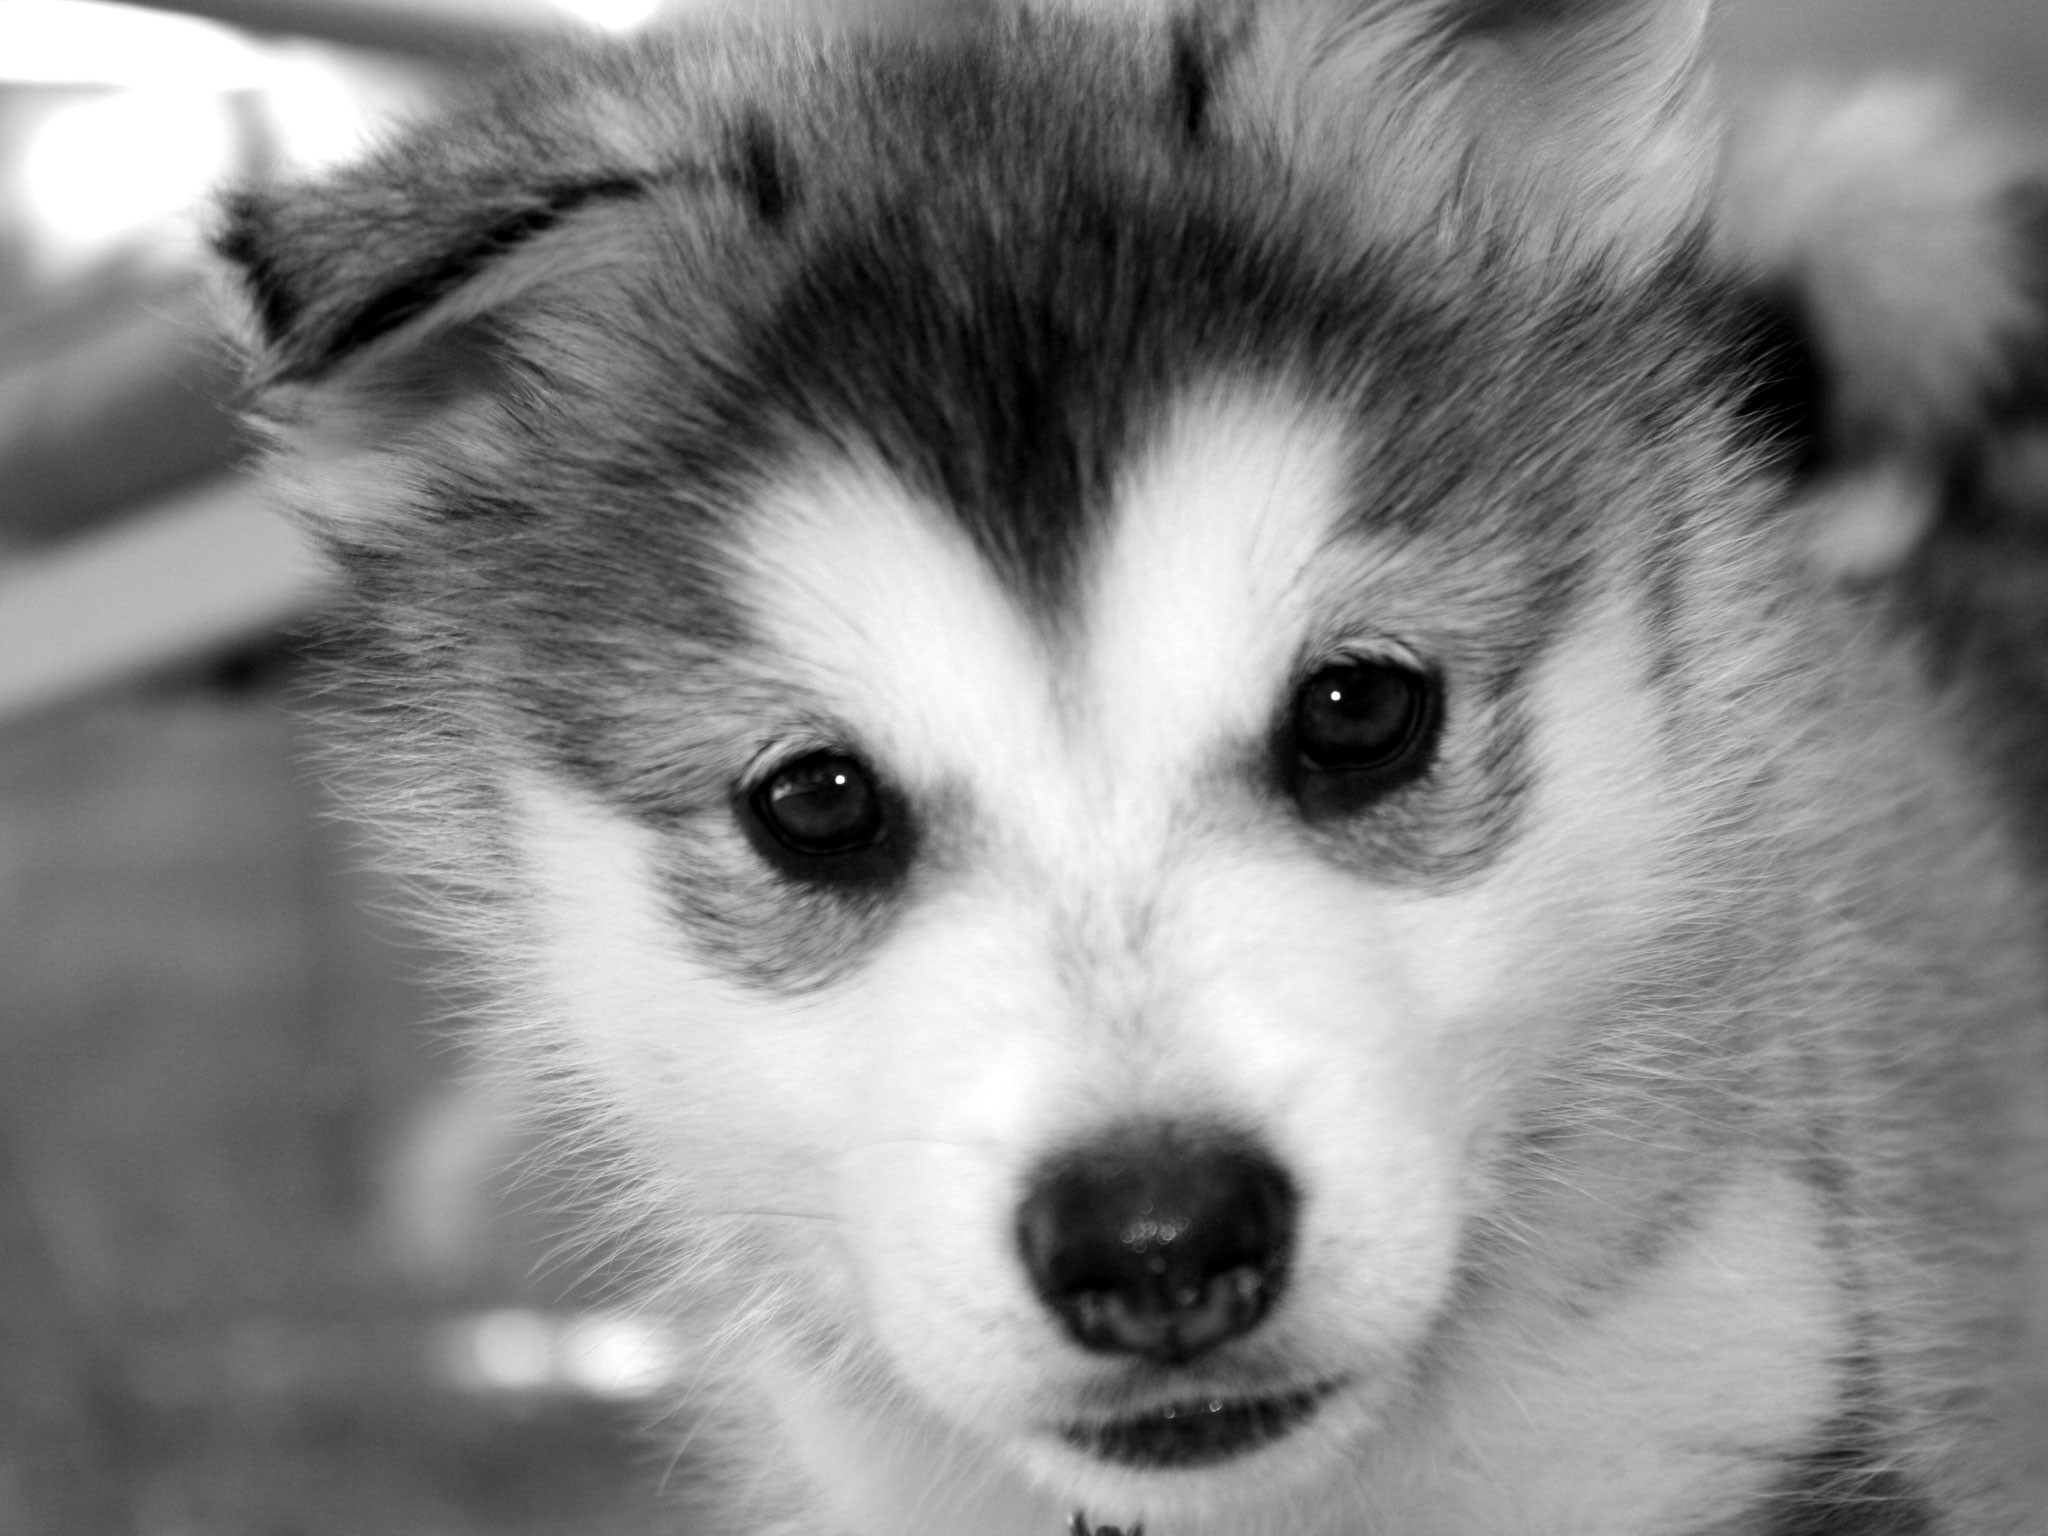 Cute Dog Iphone Wallpaper Baby Dogs Wallpapers 54 Images